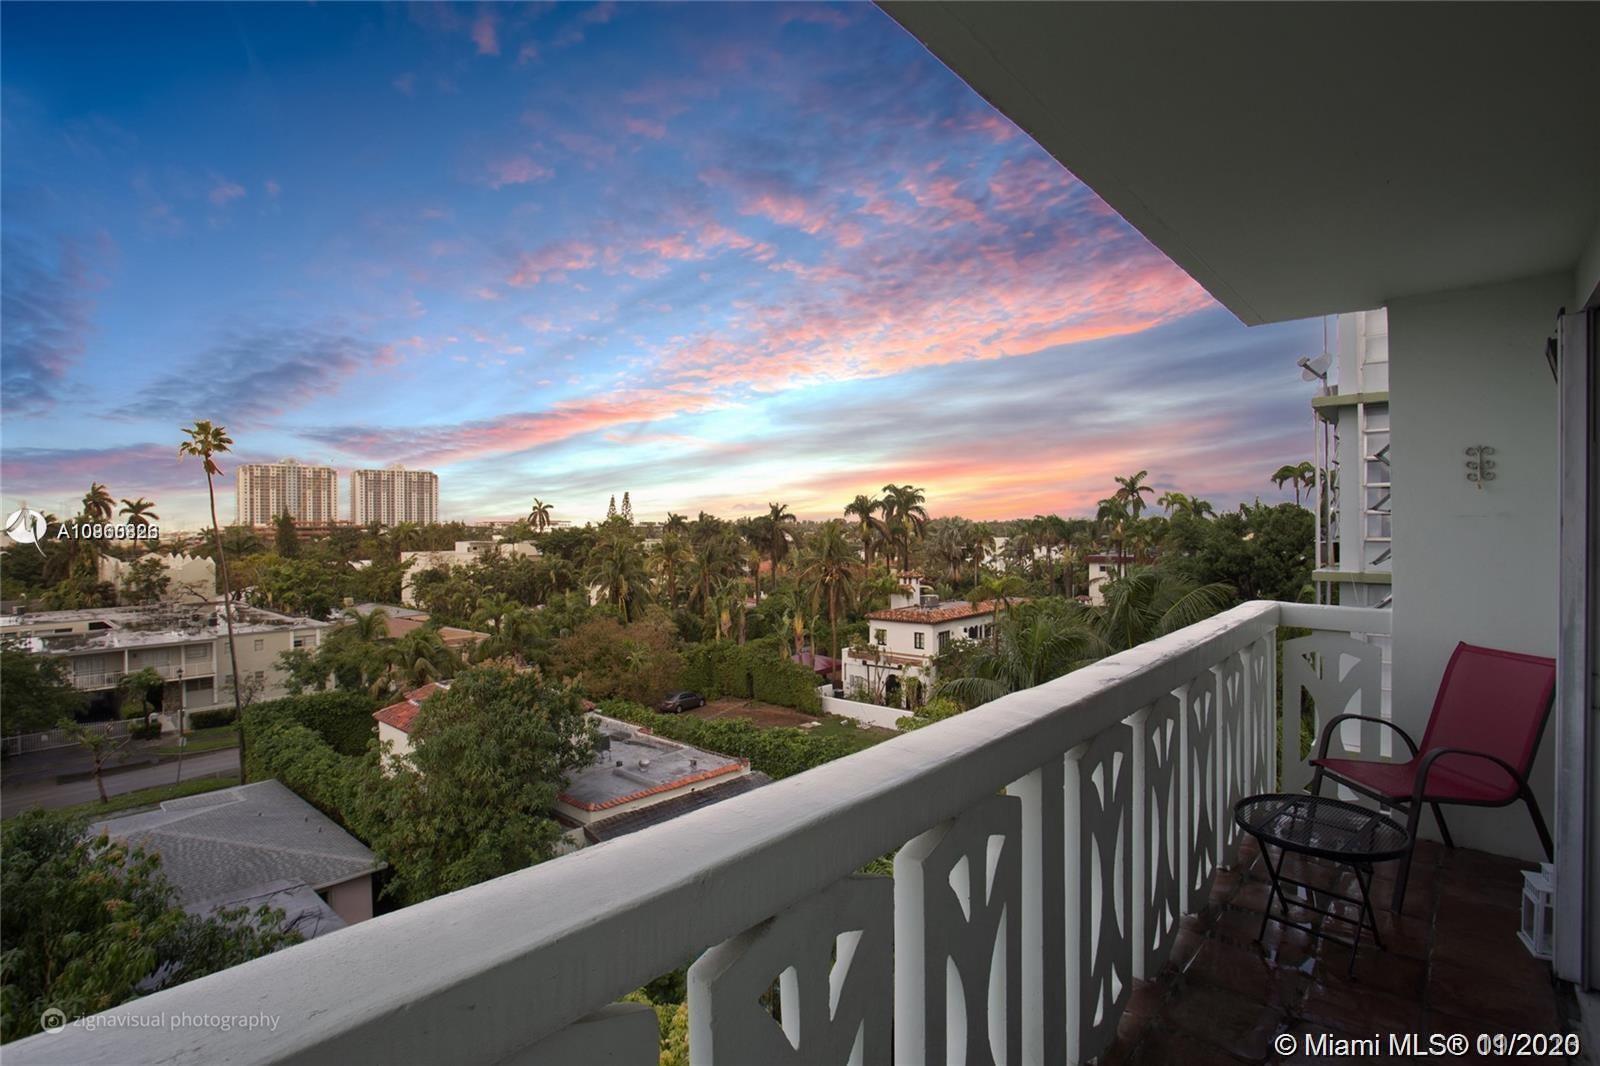 Great Investment! Short Term Rentals allowed License: #BTR 008410-12-2019, LEGAL AND APPROVED BY HOA